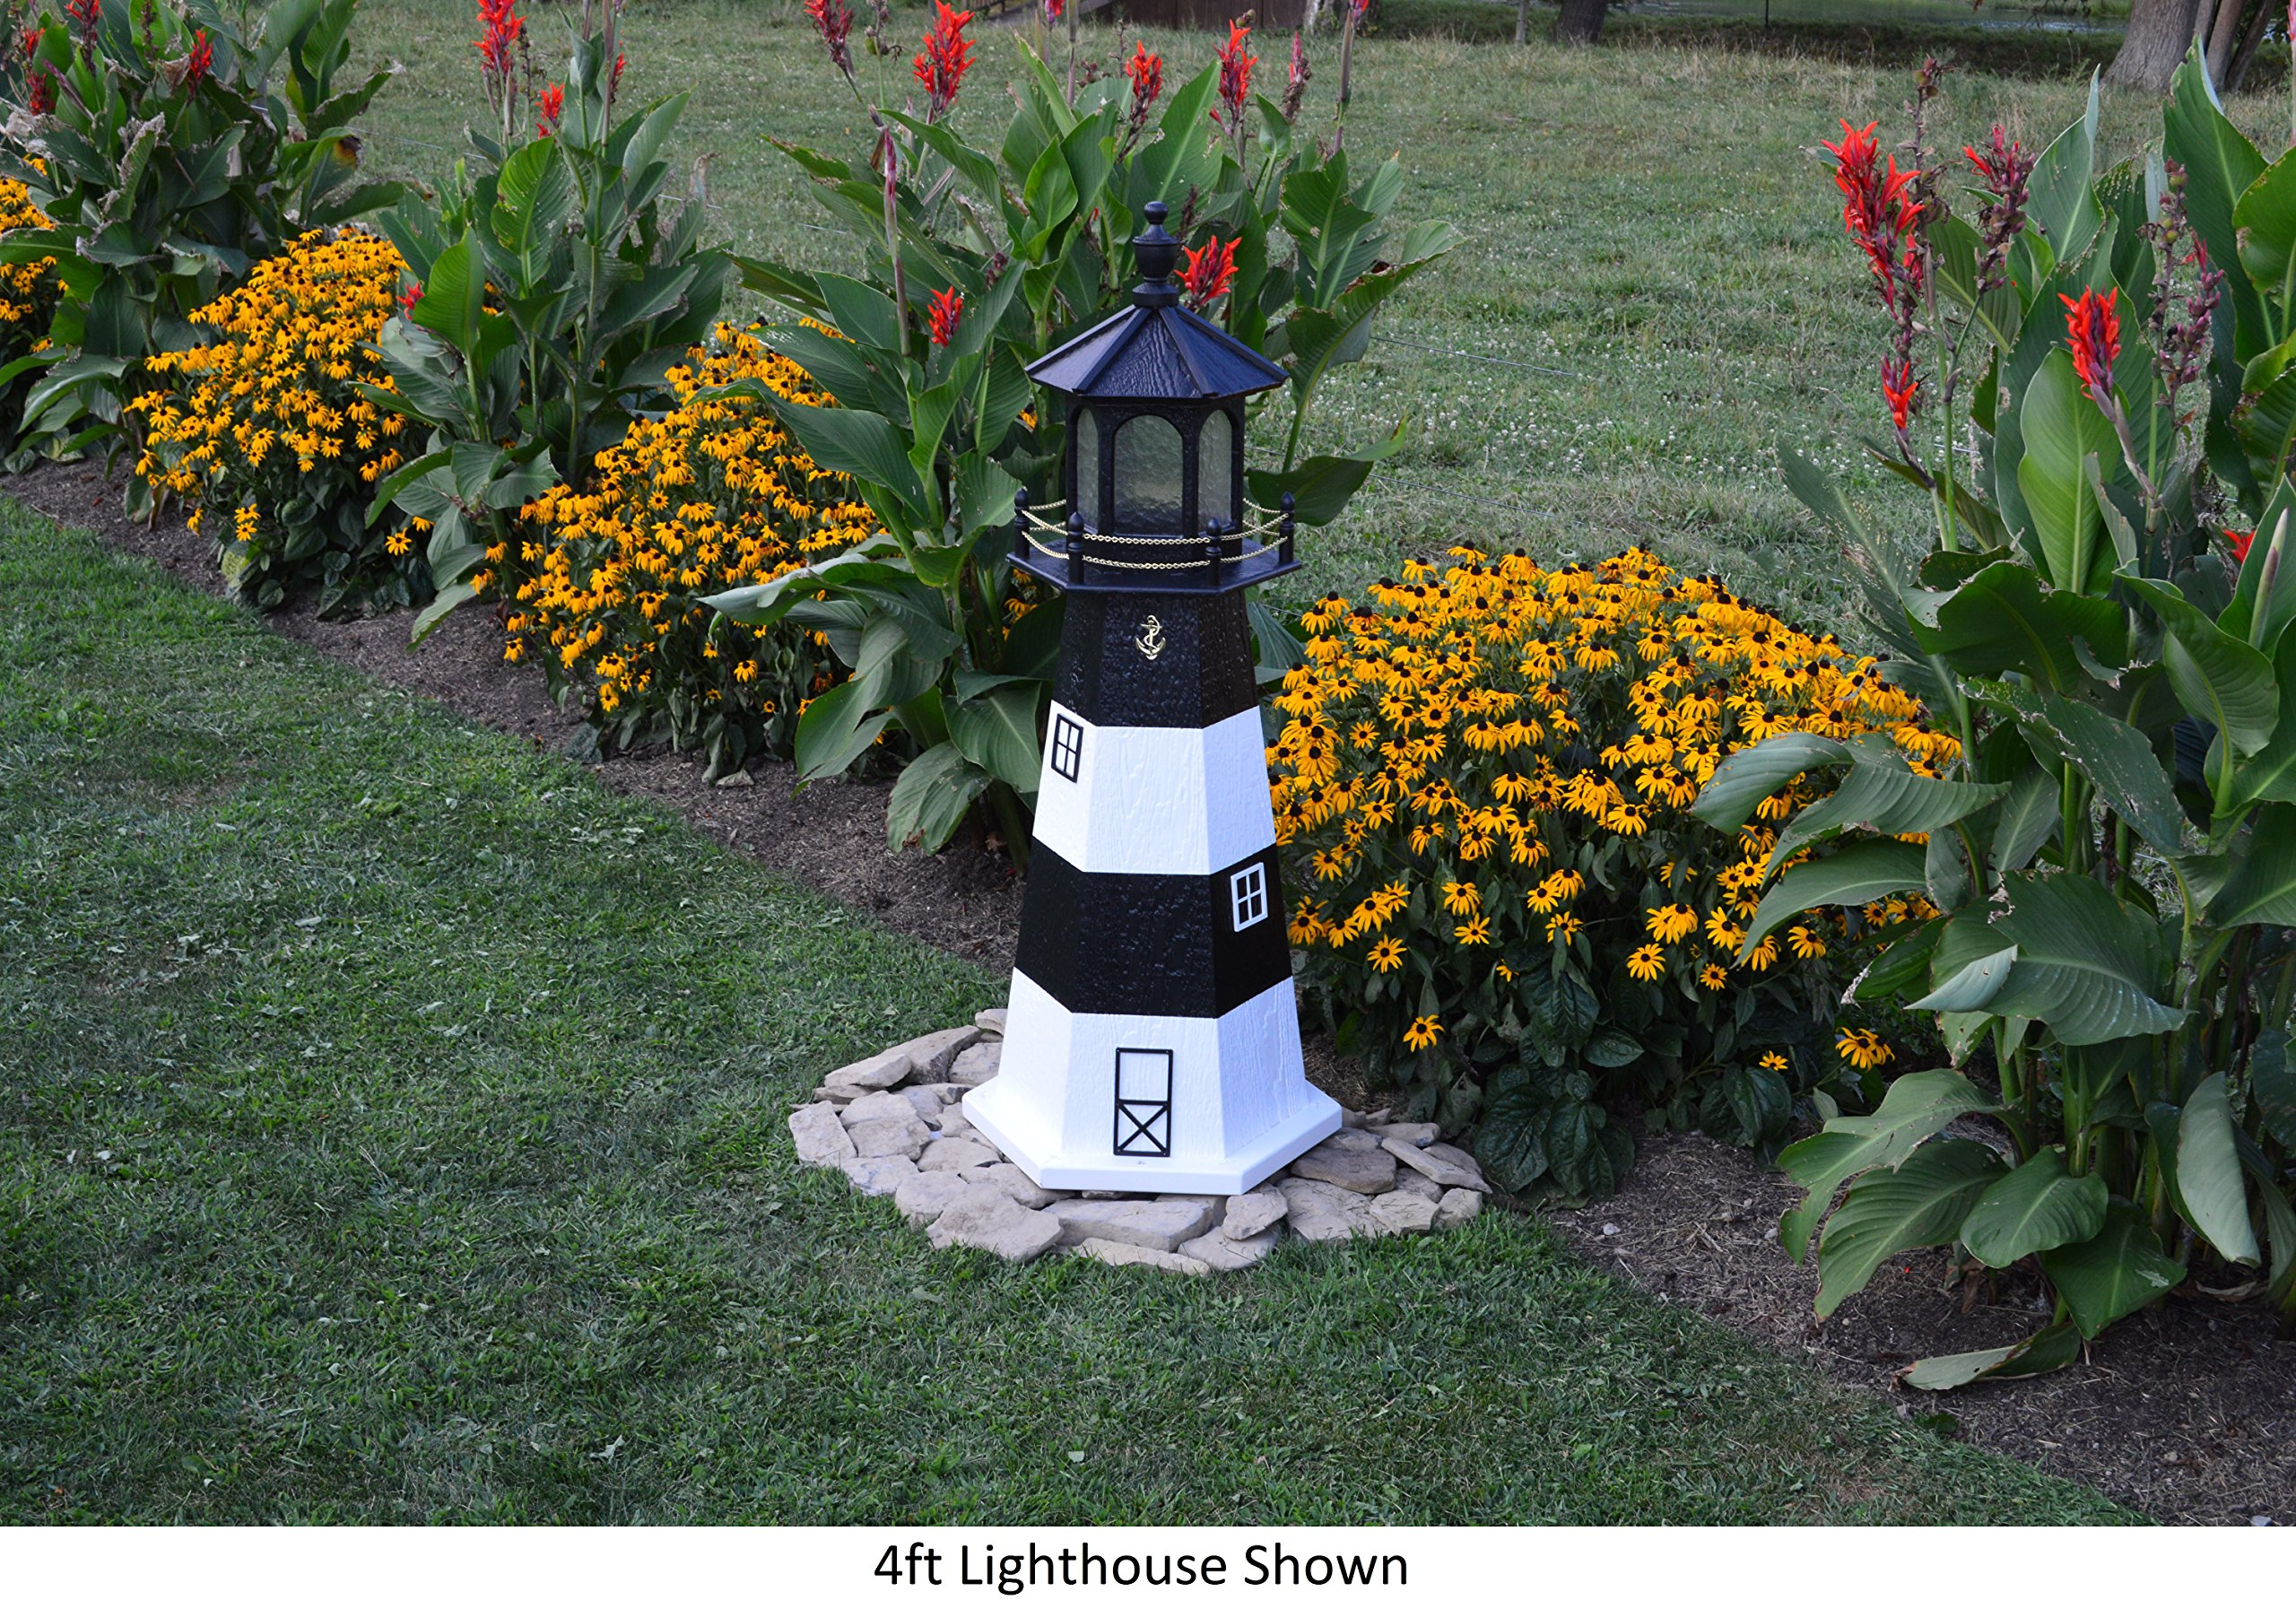 Amish-Made Fire Island, NY Replica Lighthouse, 48'' Tall